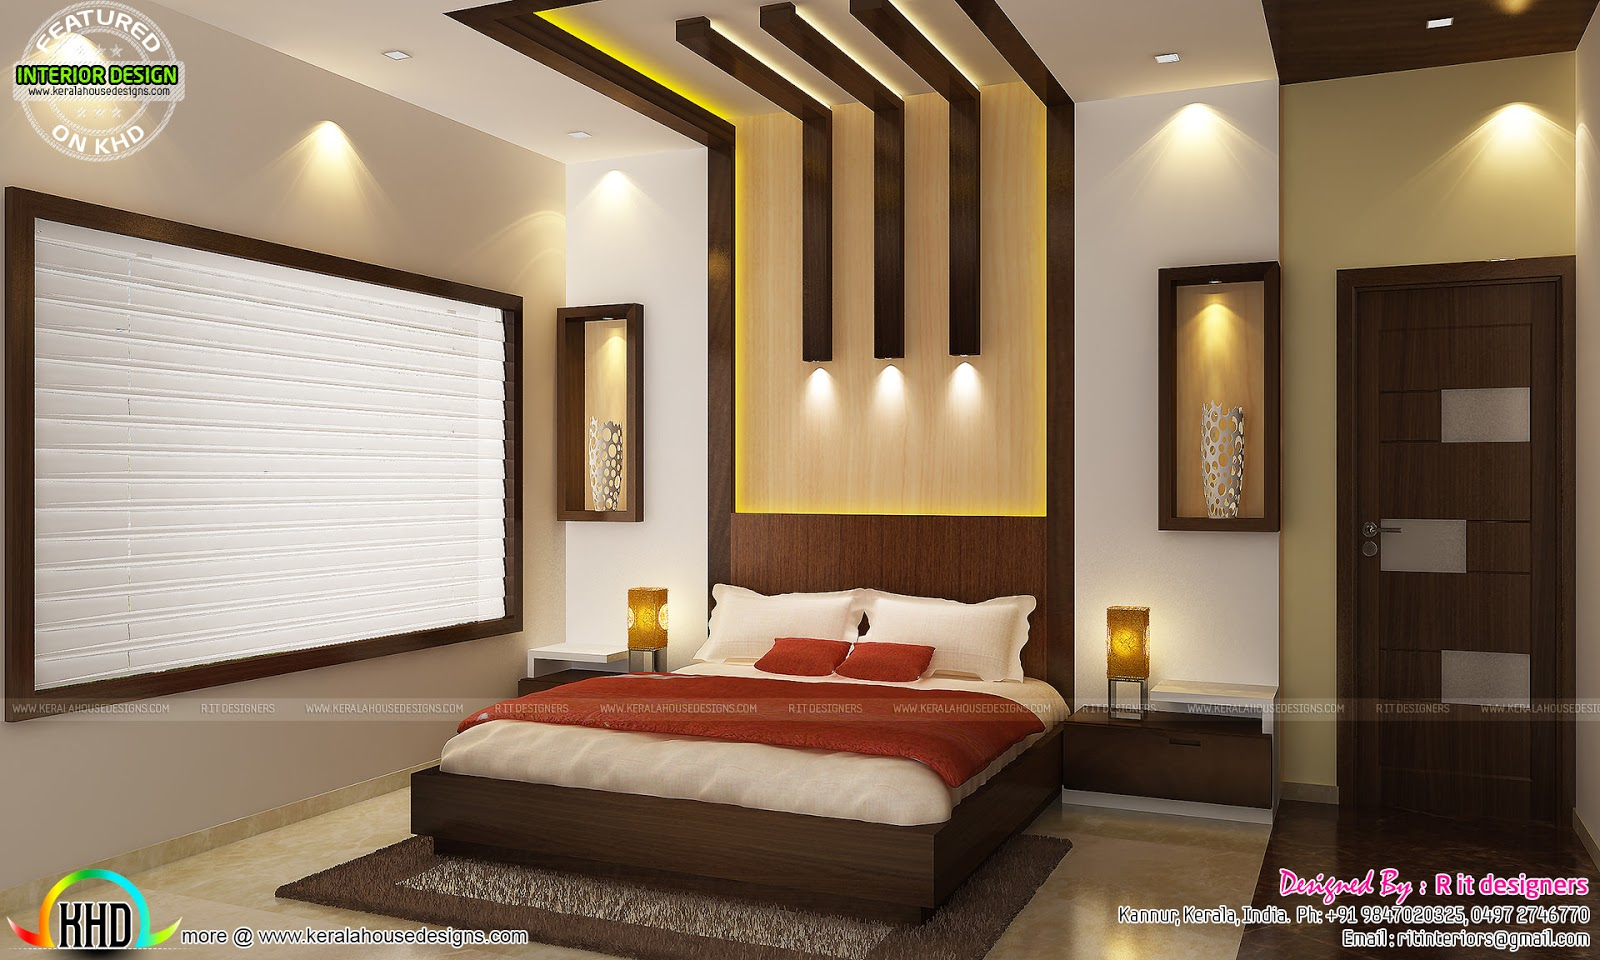 Kitchen living bedroom dining interior decor kerala home design and floor plans Interior design ideas for selling houses